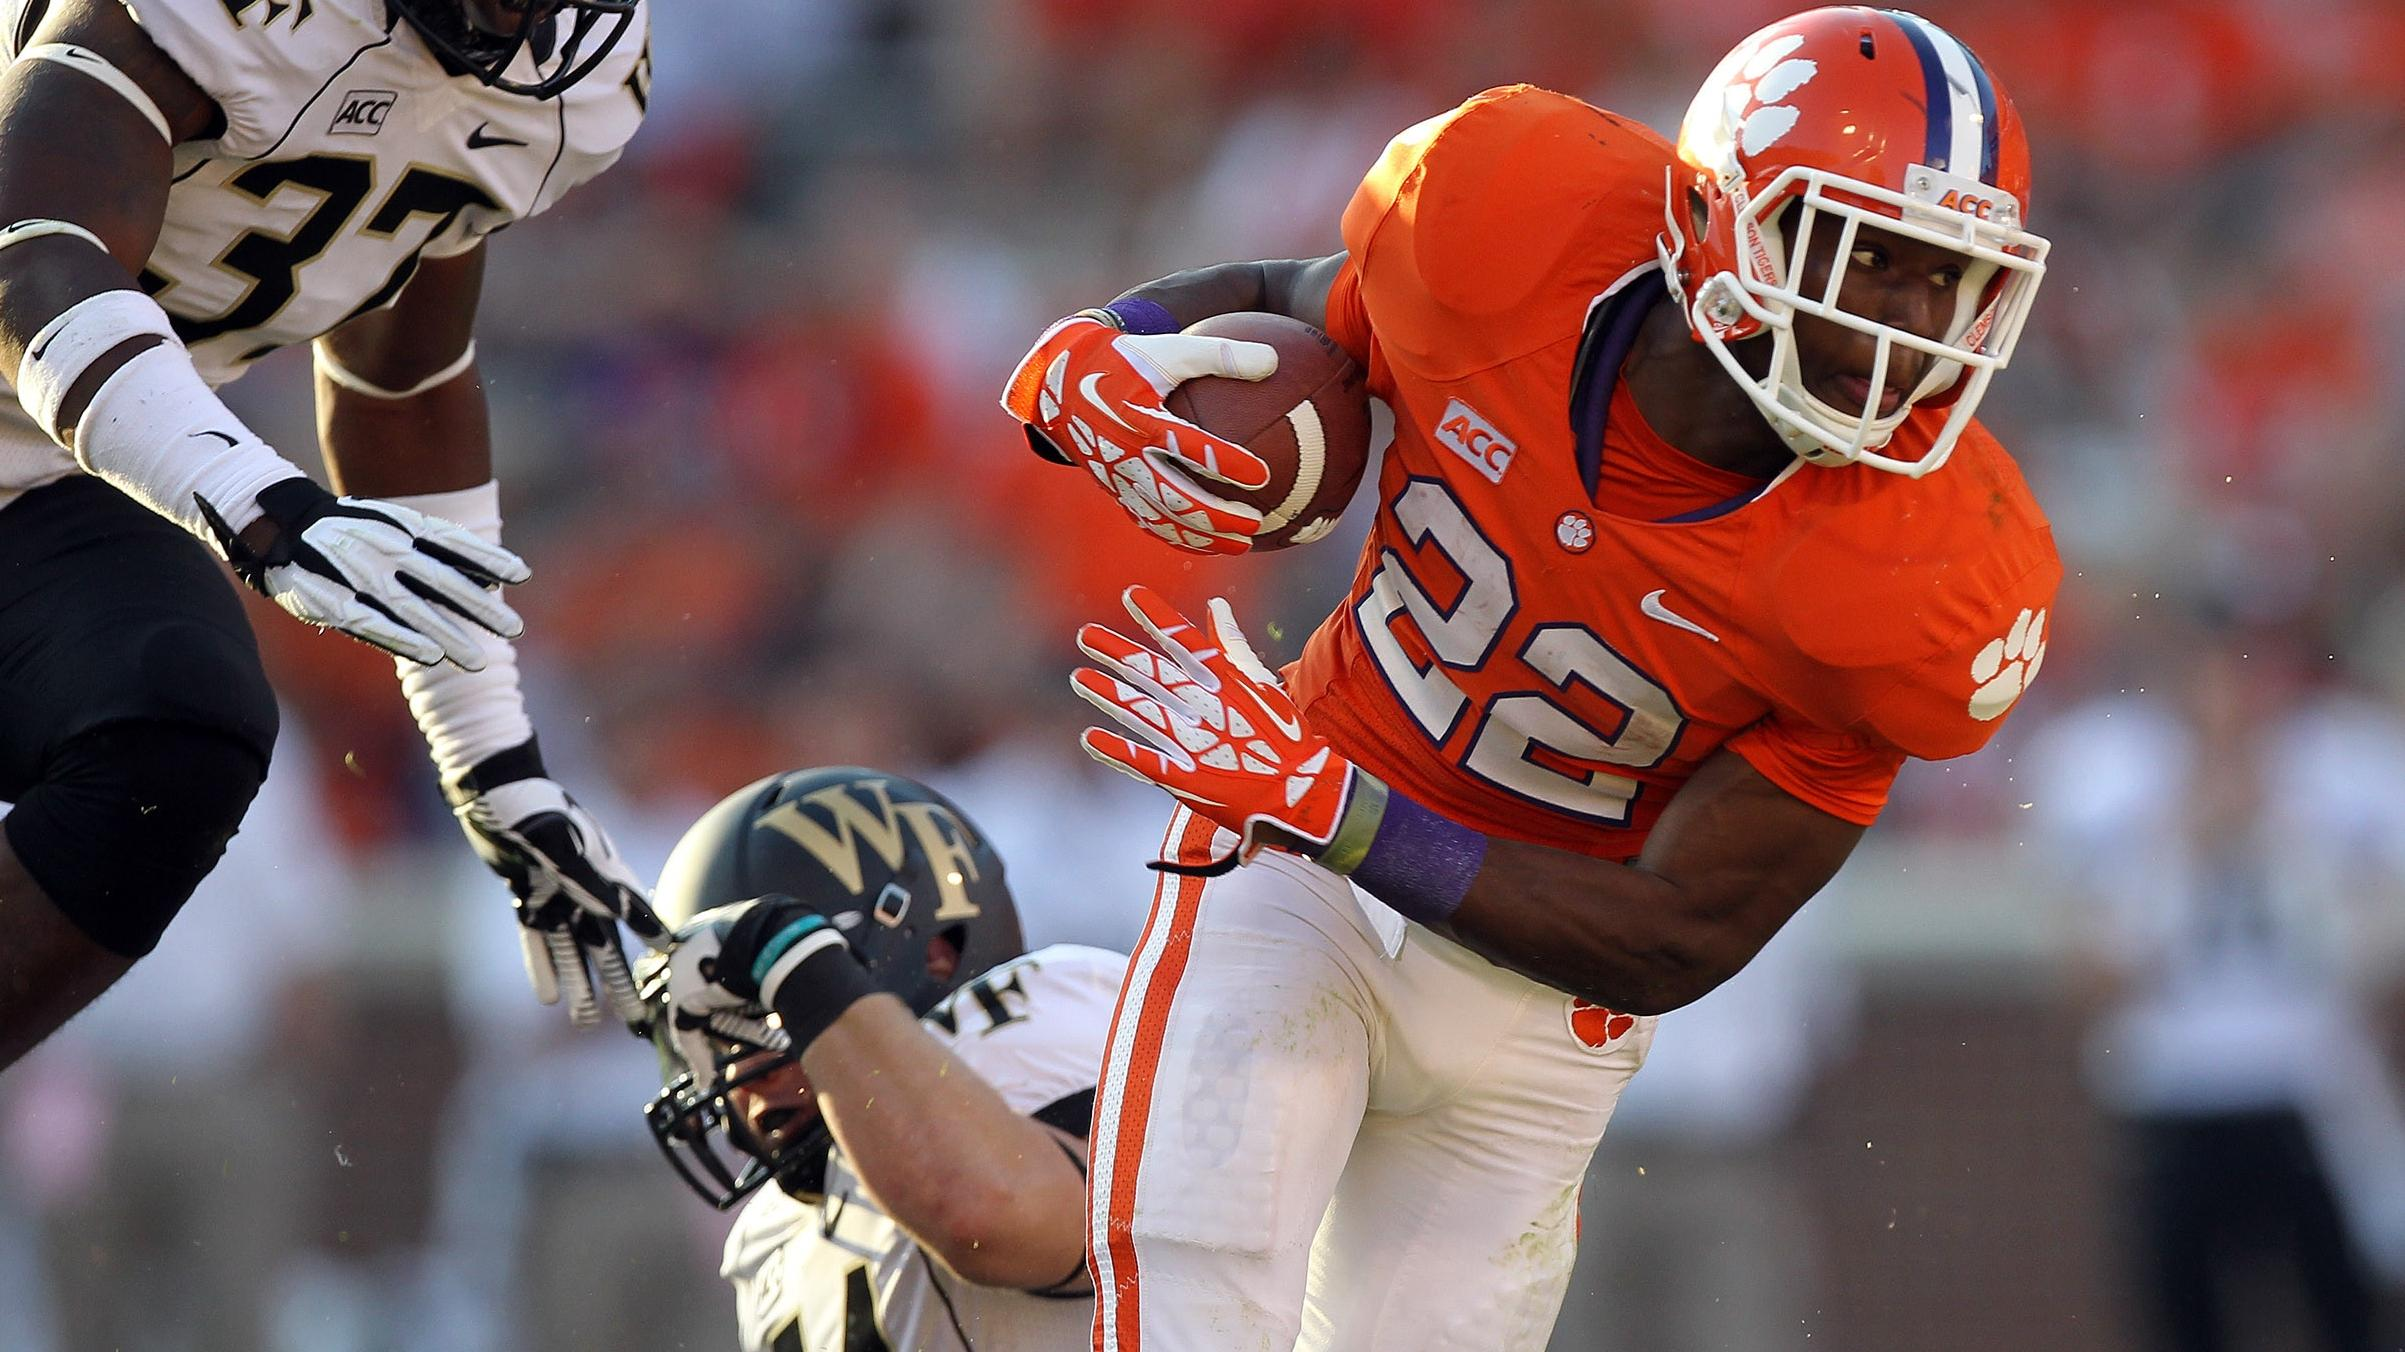 Clemson @ Syracuse Football Game to Kick Off at 3:30 PM on October 5